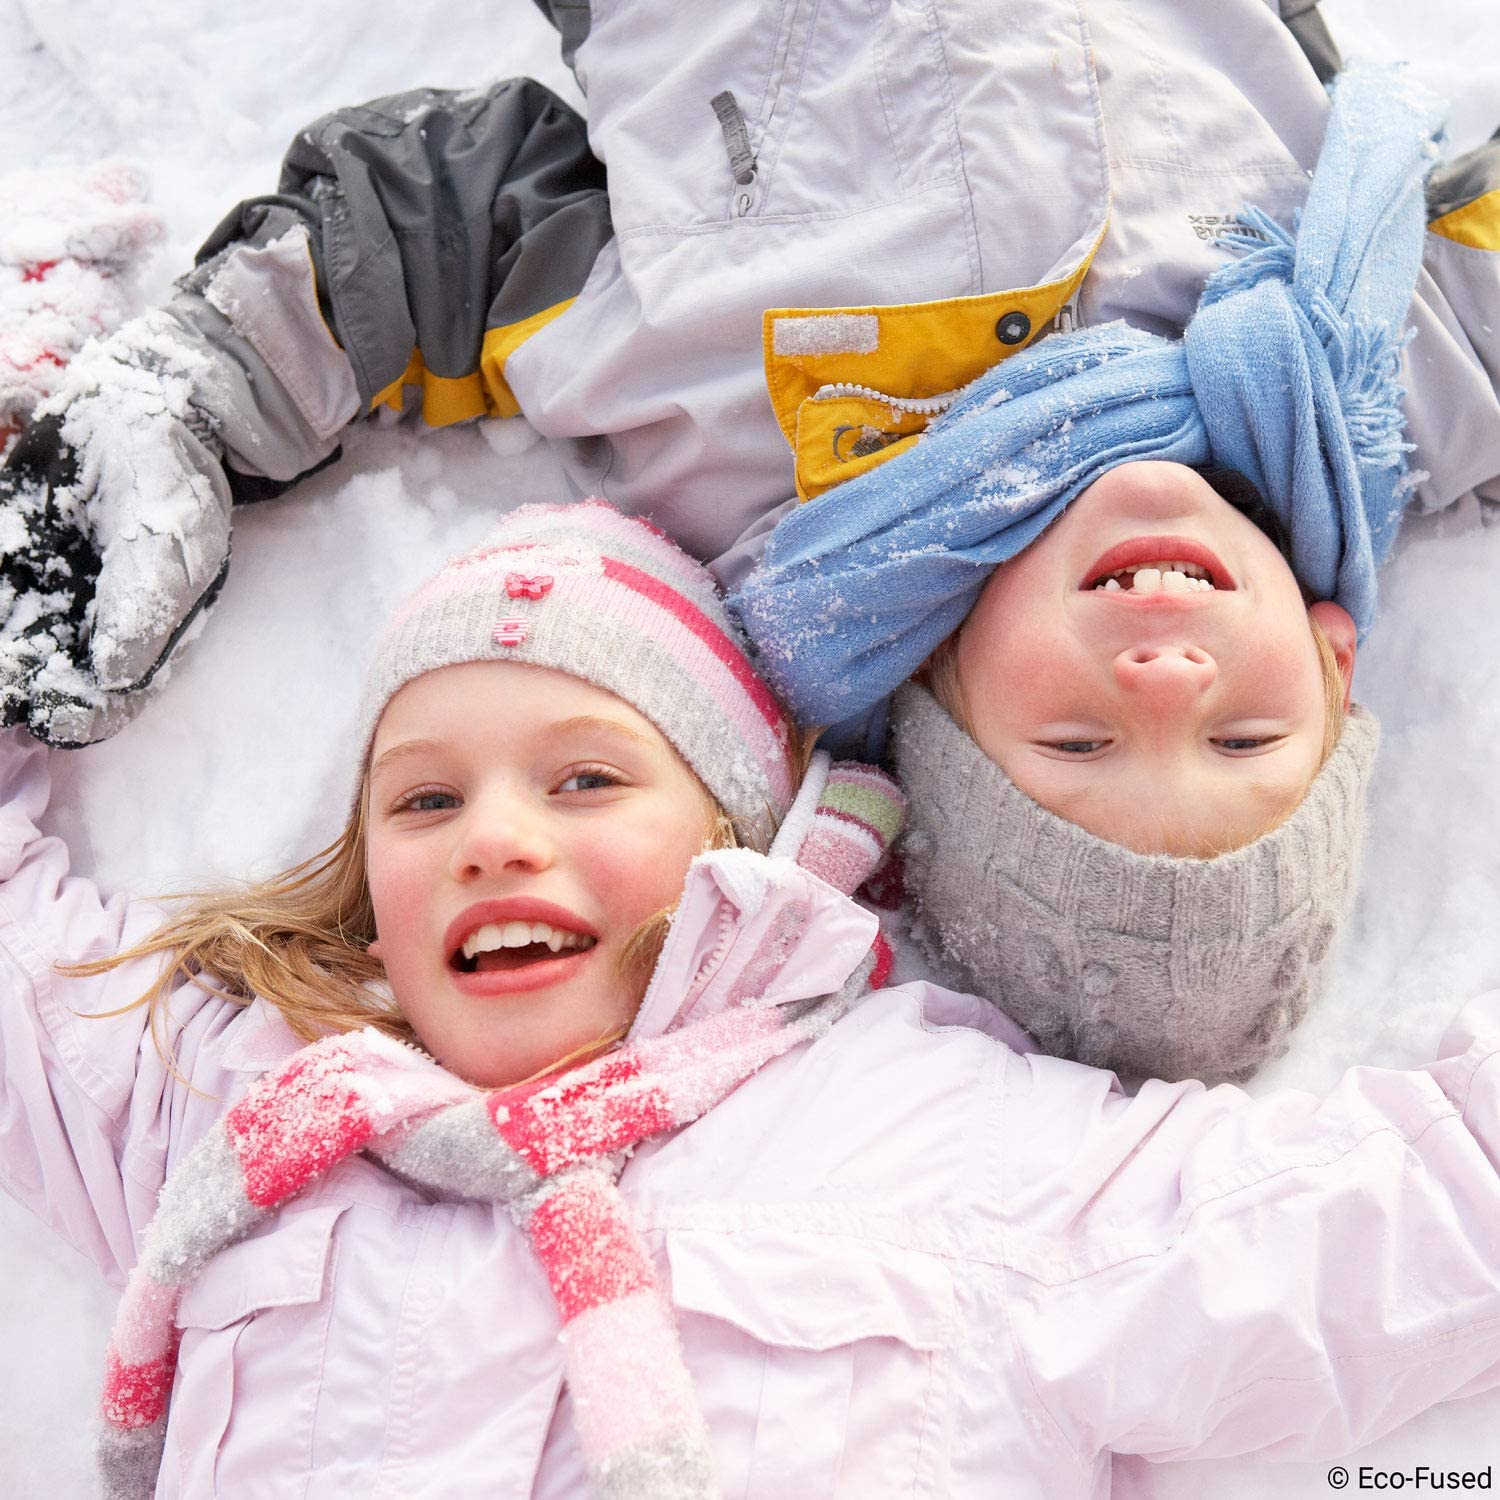 Mitten Clips and Hat Clip Never Lose Mittens Ideal for School Beanie Caps Again Strong Clips for Secure Attachment Cold Winter Days Gloves Perfect Solution for Toddlers Playing in the Snow